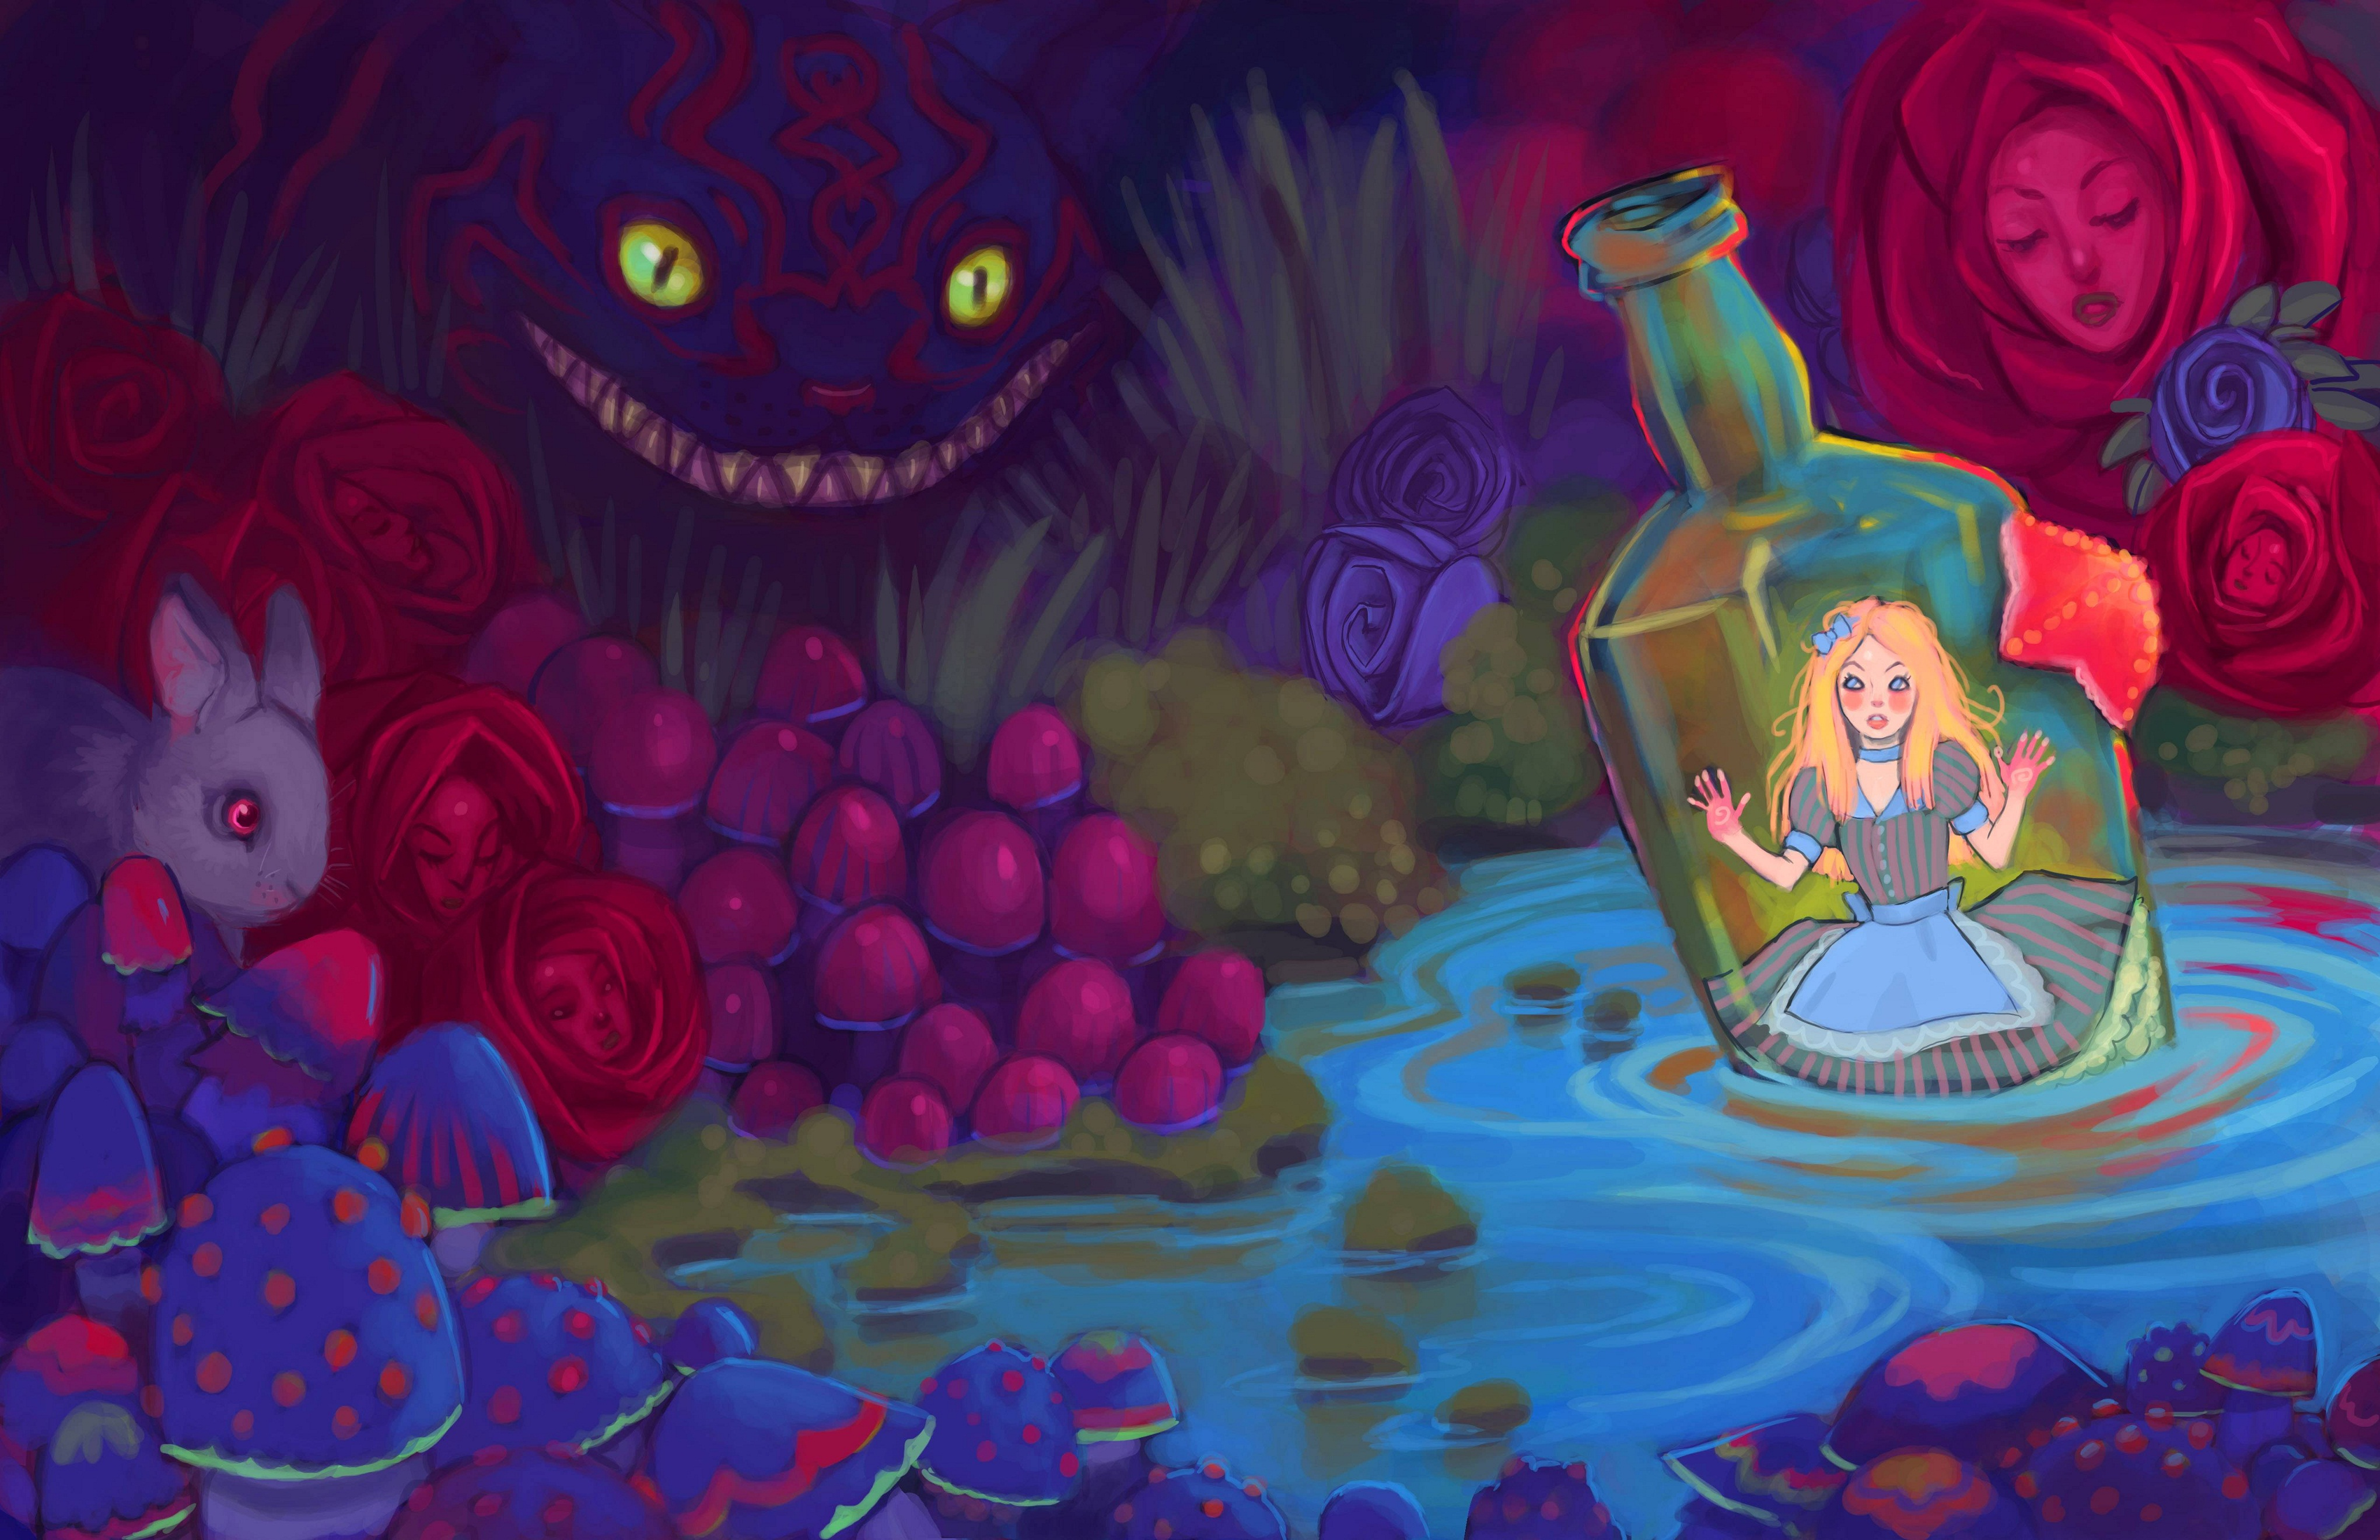 HD Alice in Wonderland Wallpaper | PixelsTalk Net